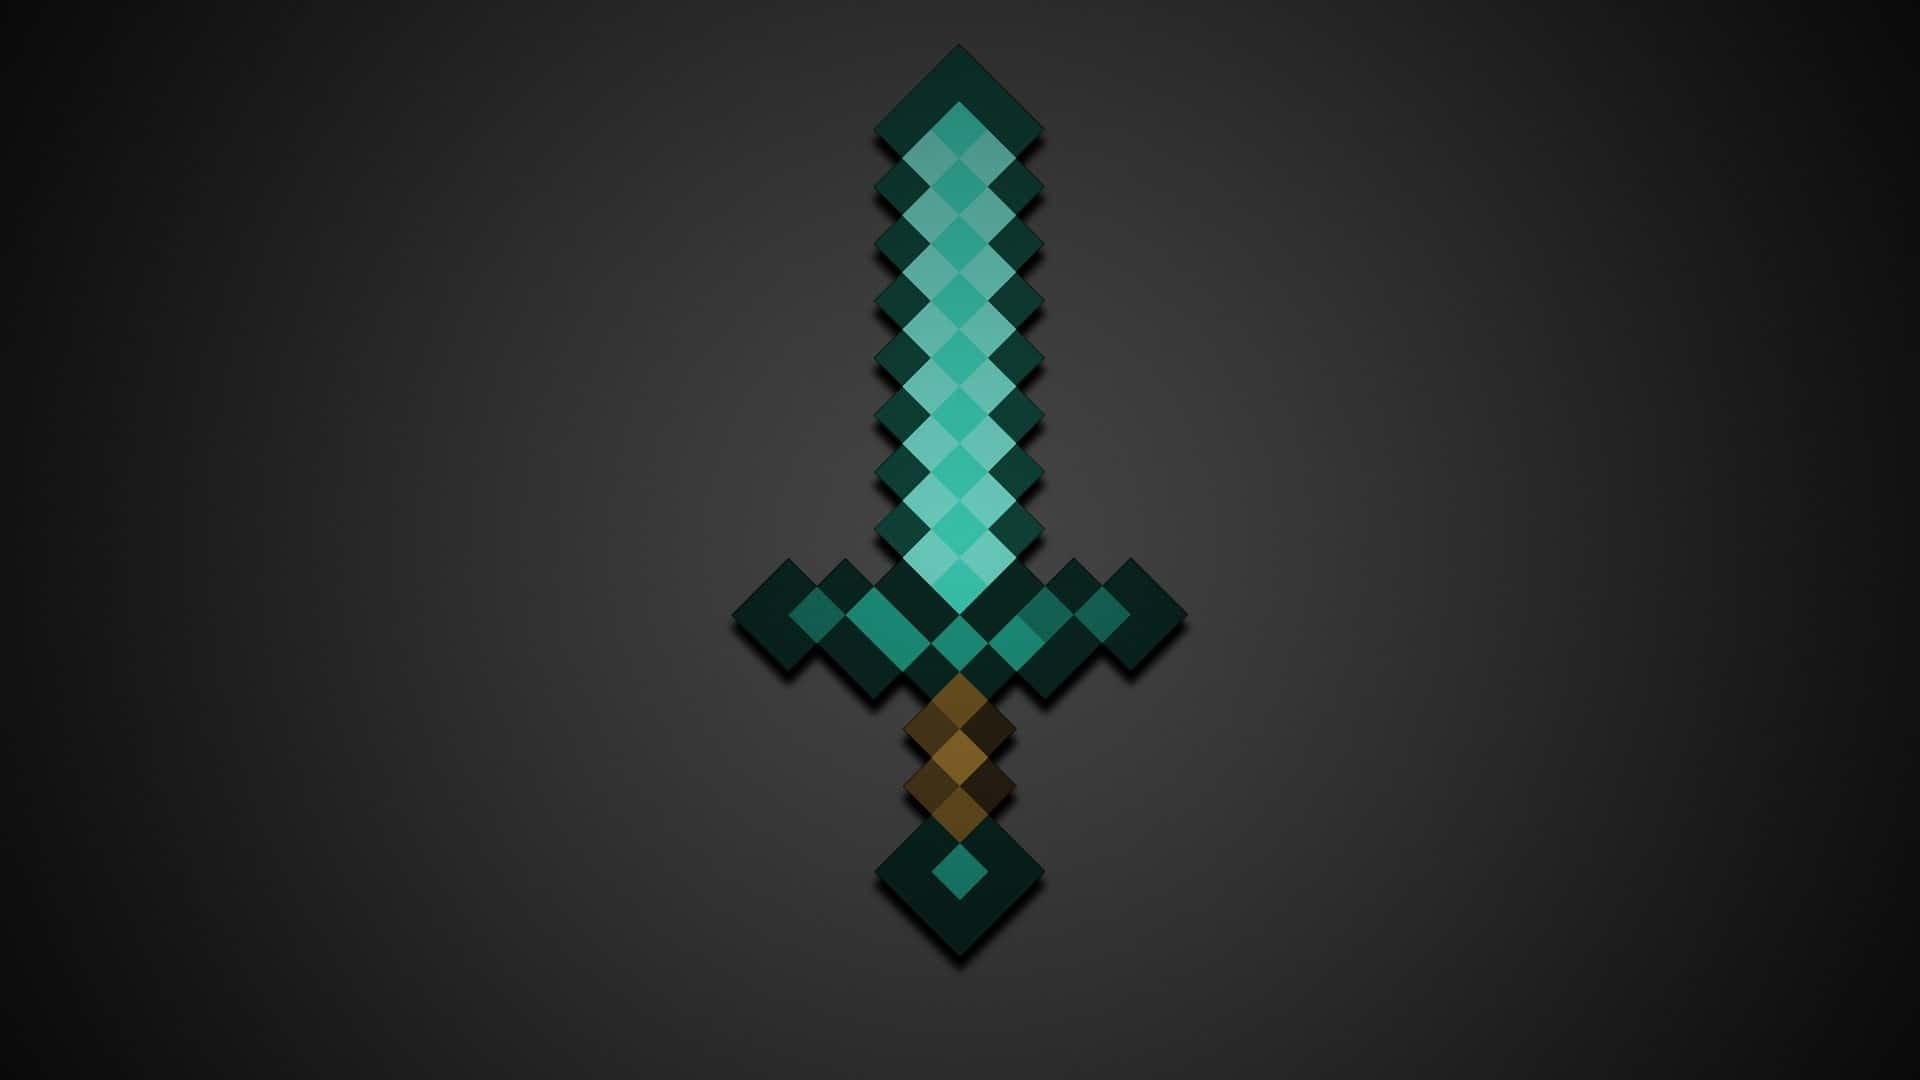 Minecraft wallpaper diamond sword background gray